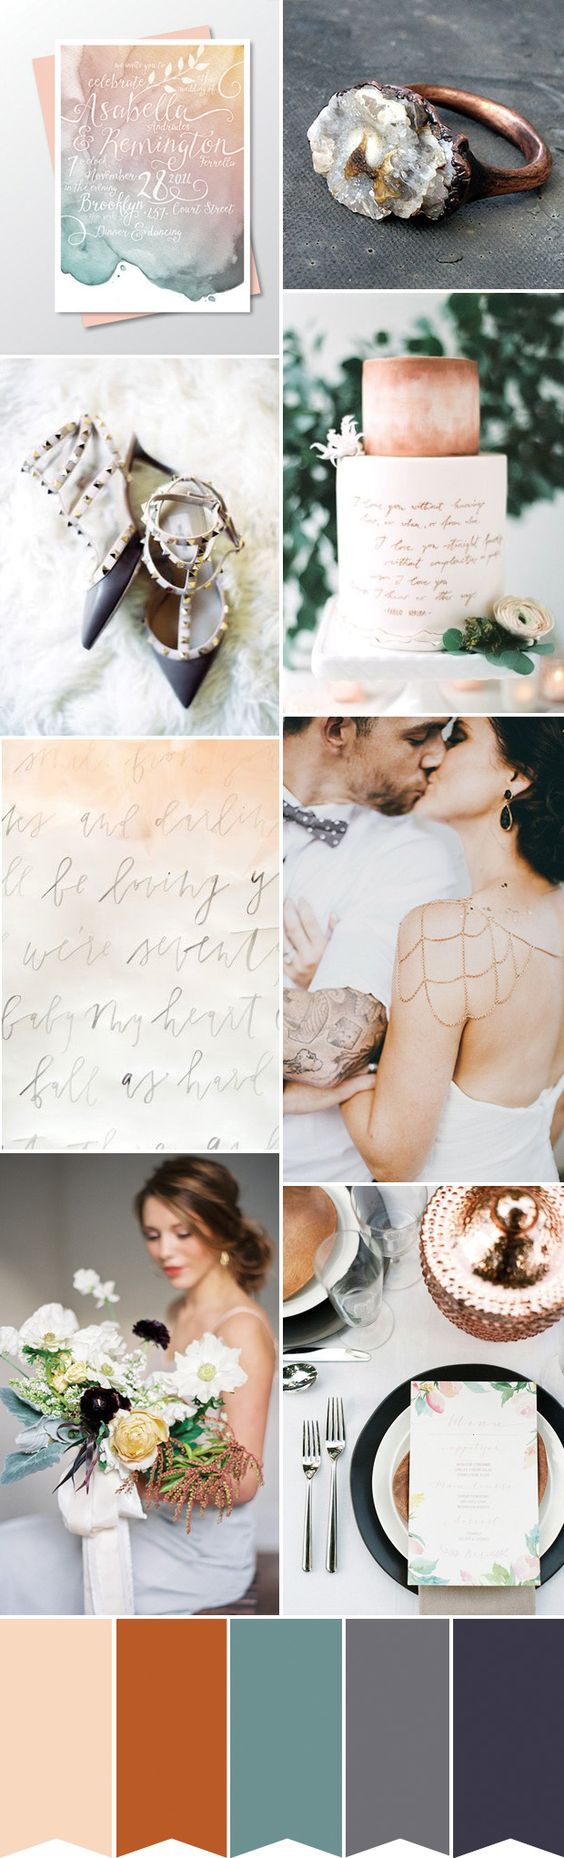 Contemporary and Chic   Copper and Watercolor Wedding Inspiration   see how to create the look on www.onefabday.com